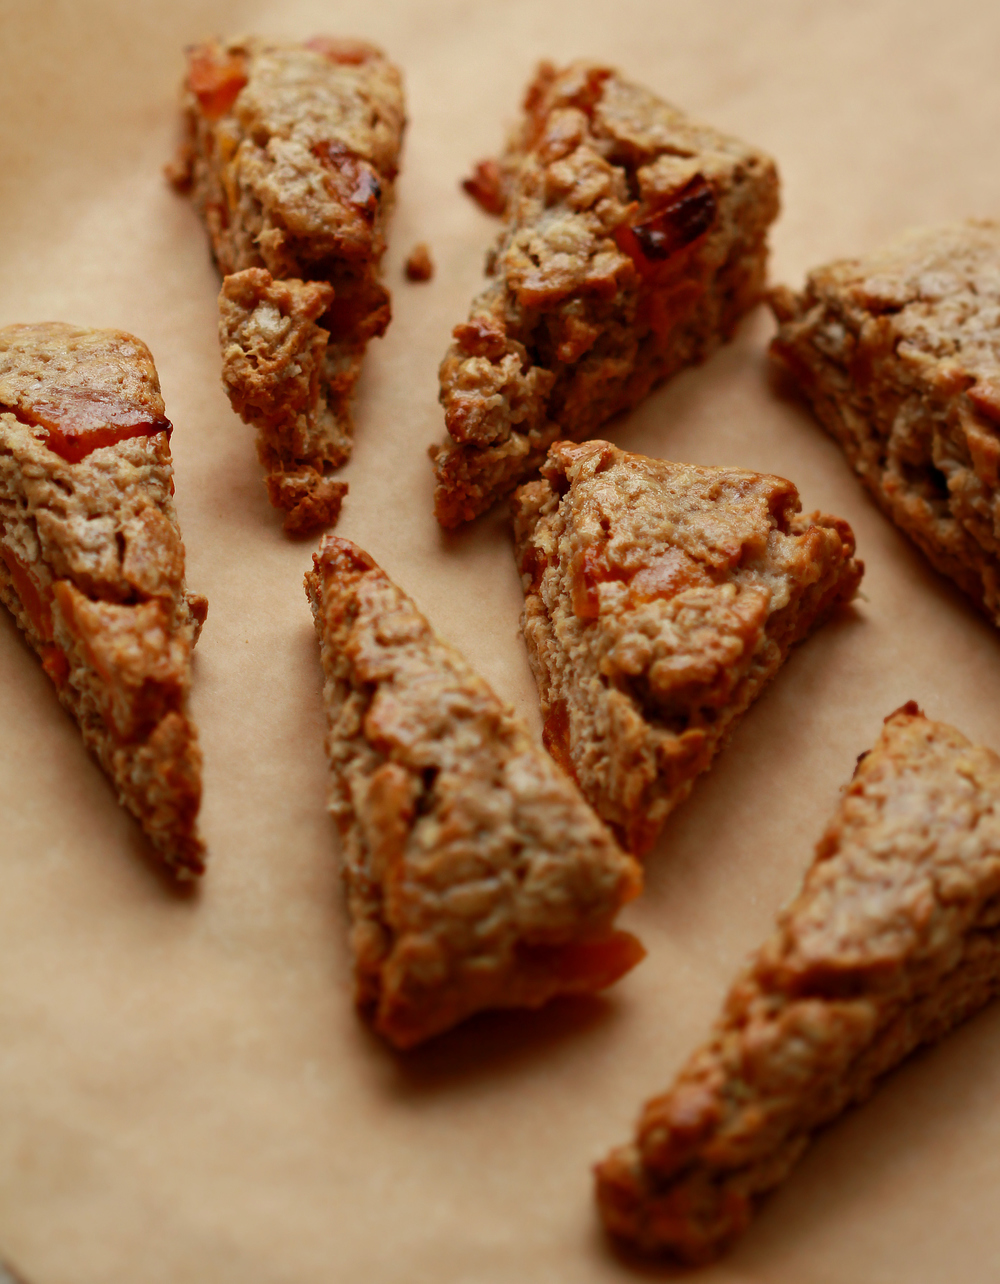 ©Oatmeal & Apricot Scones by Dena T Bray